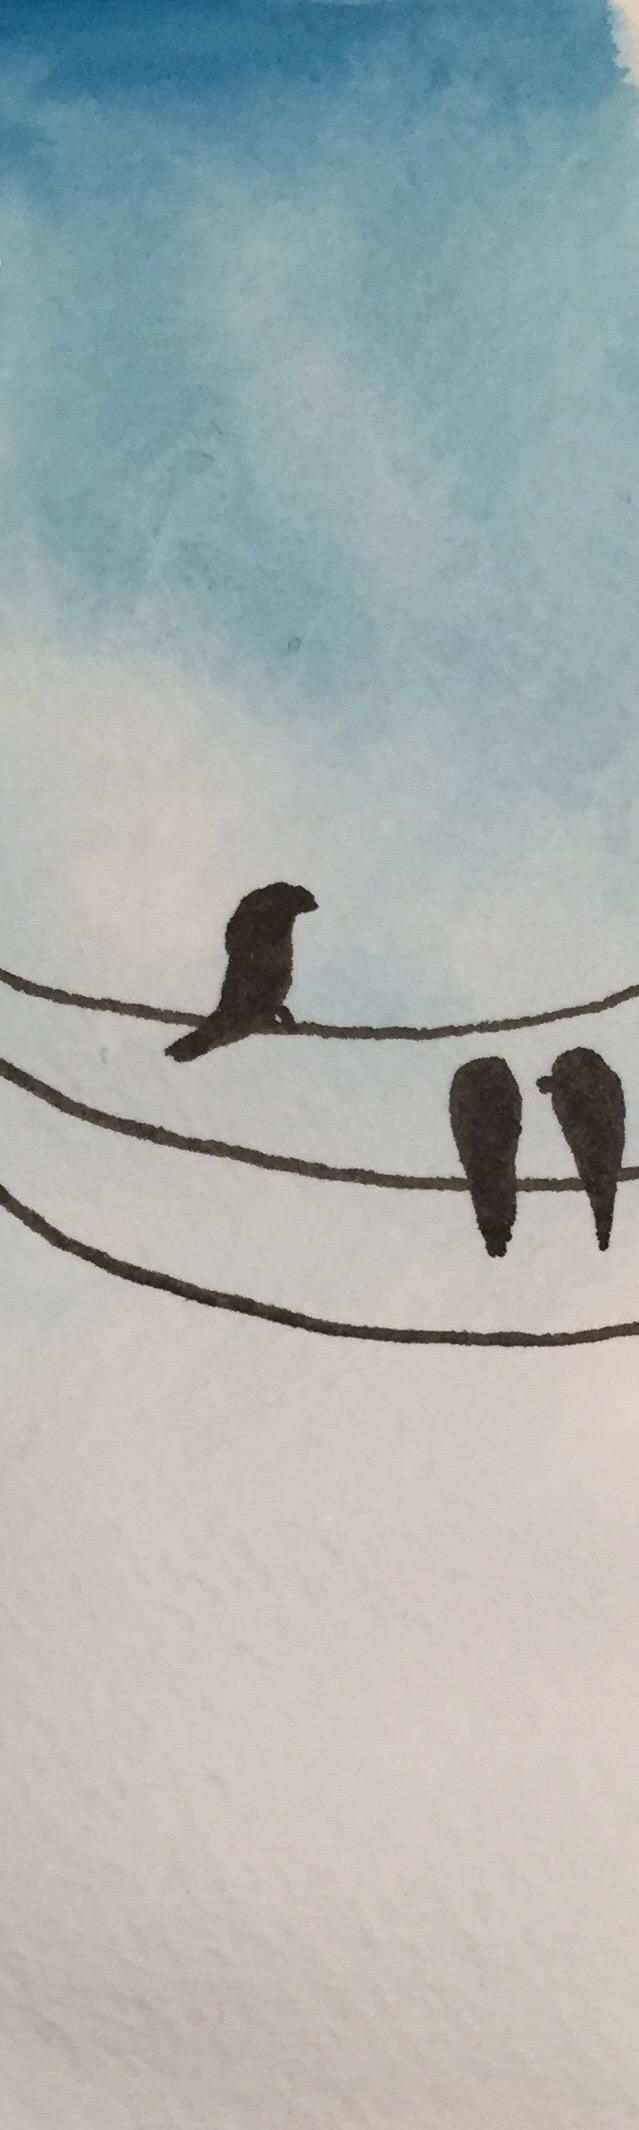 Birds on wire - image 1 - student project